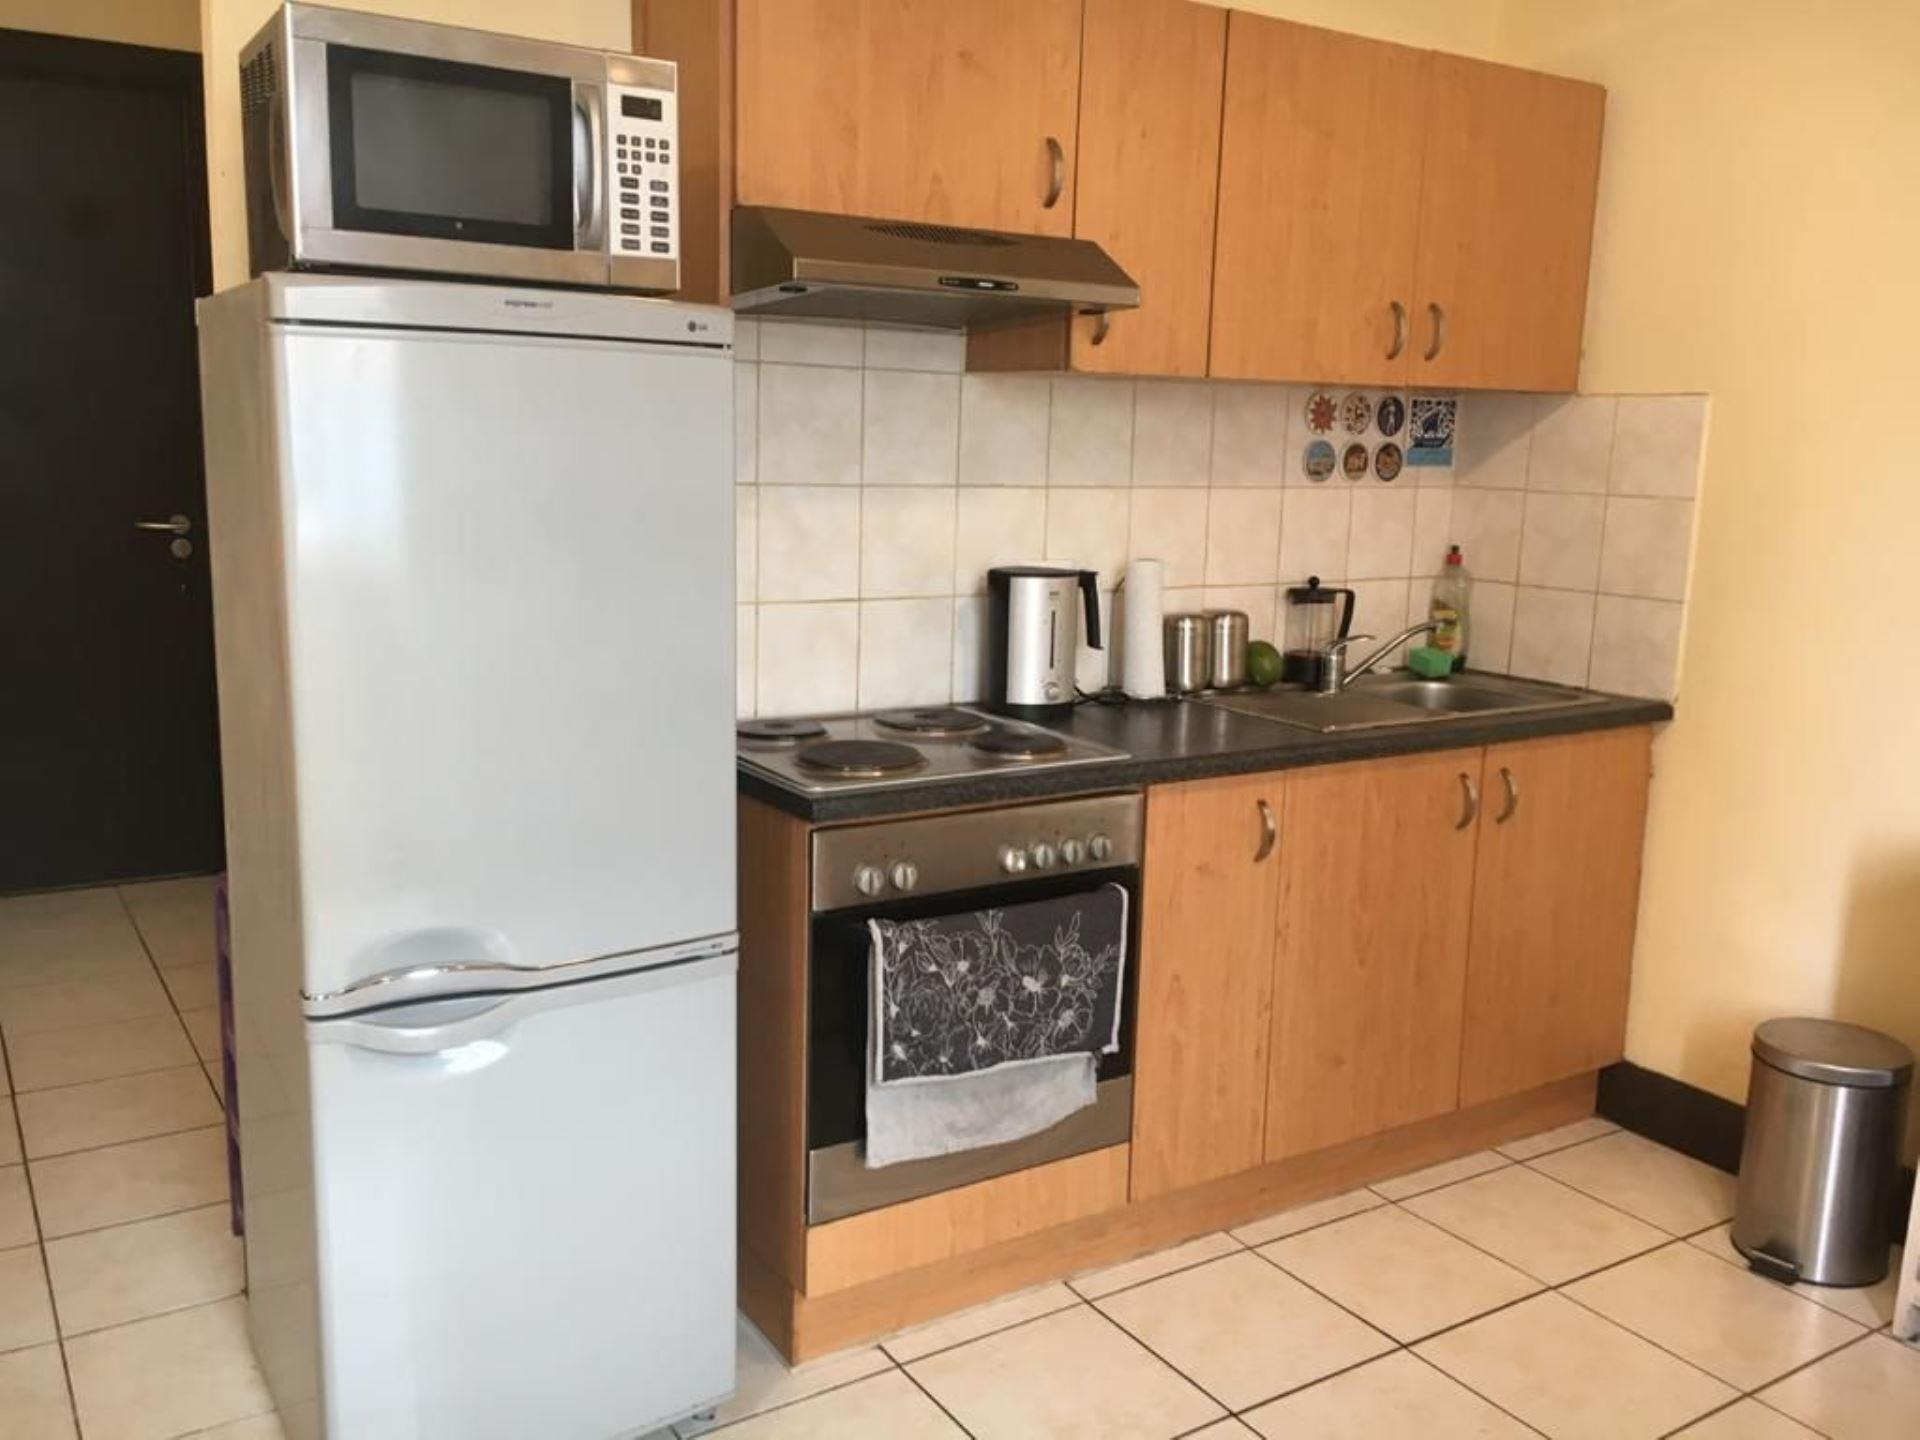 0.5 Bedroom Apartment / Flat For Sale in Cape Town City Centre